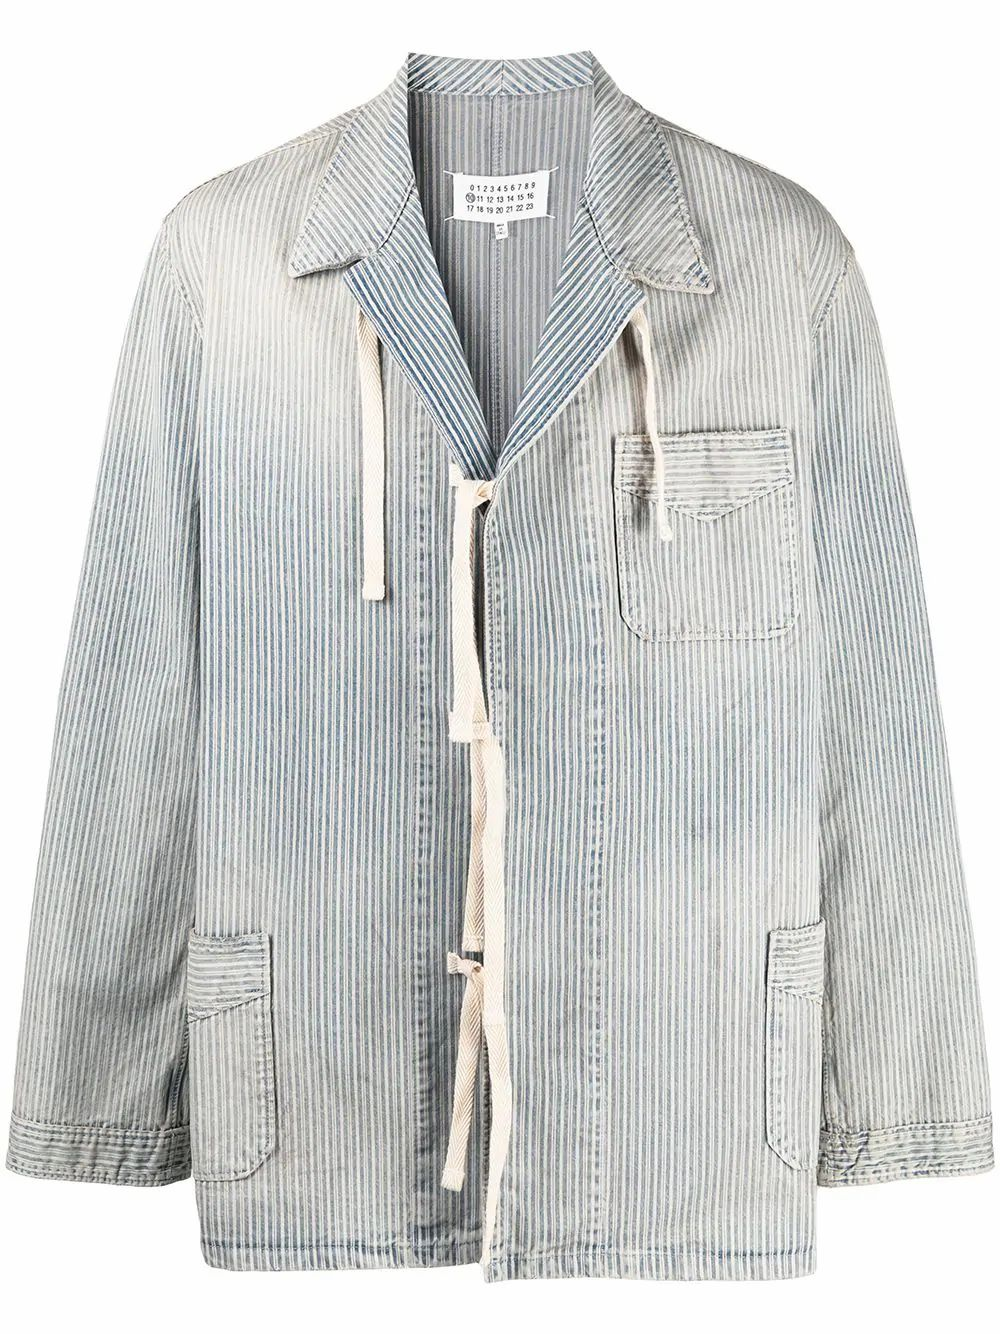 Maison Margiela MAISON MARGIELA MEN'S LIGHT BLUE COTTON JACKET